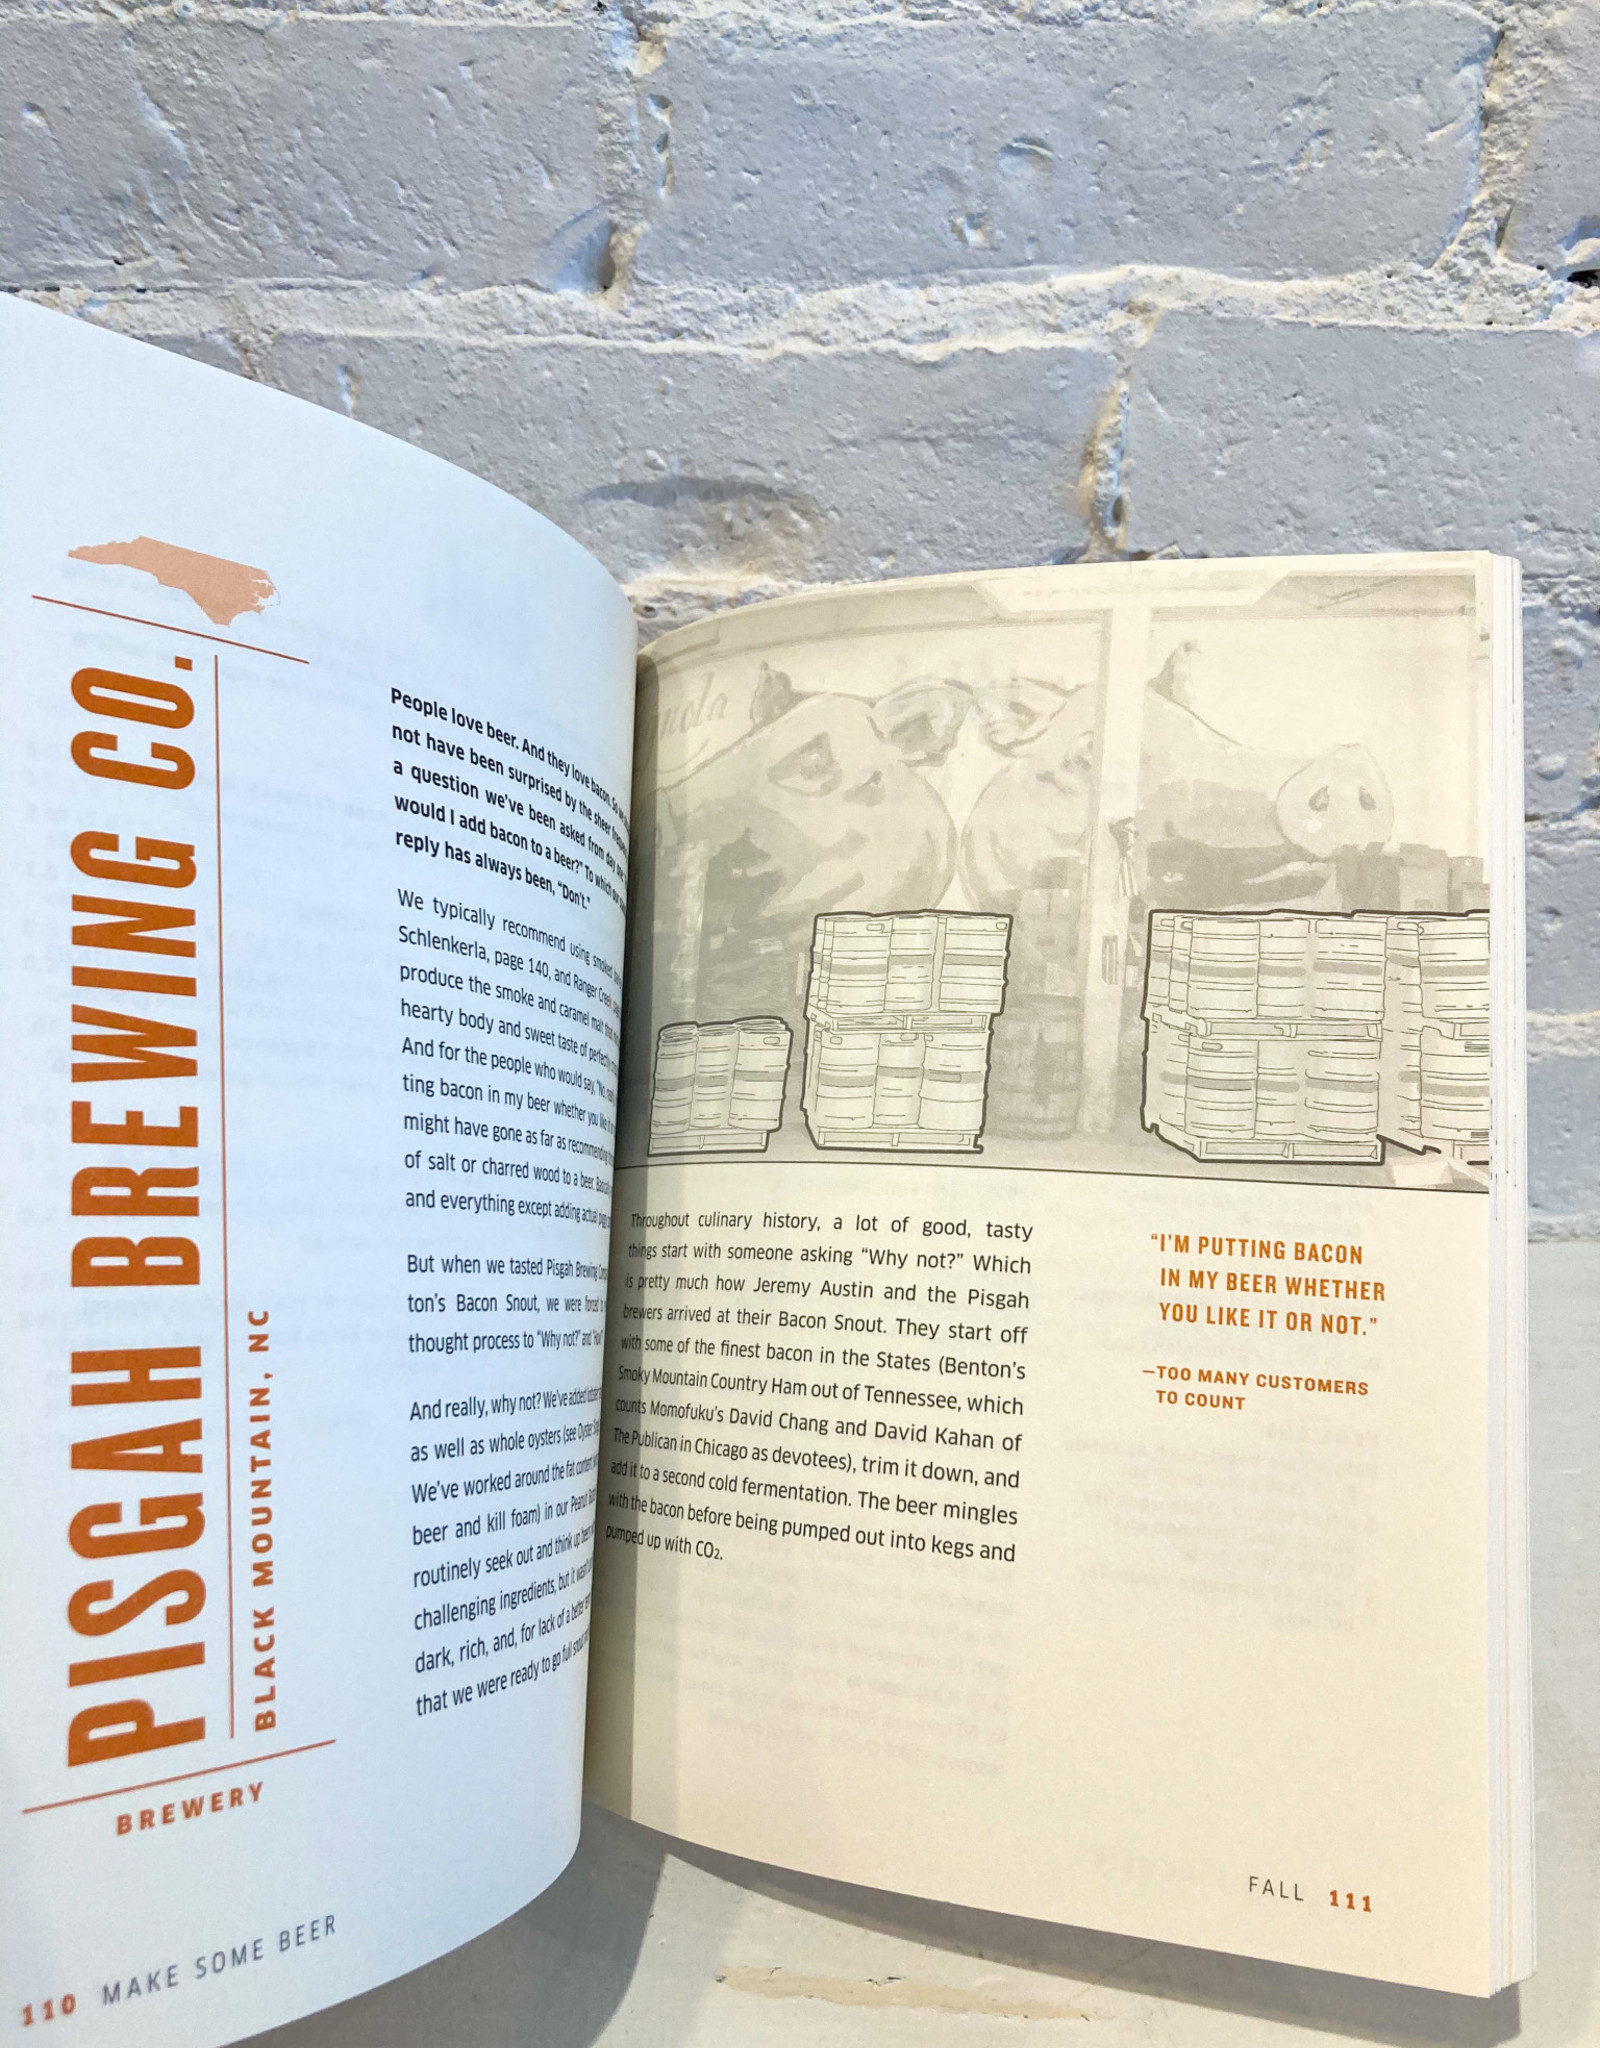 Make Some Beer by Erica Shea & Stephen Valand